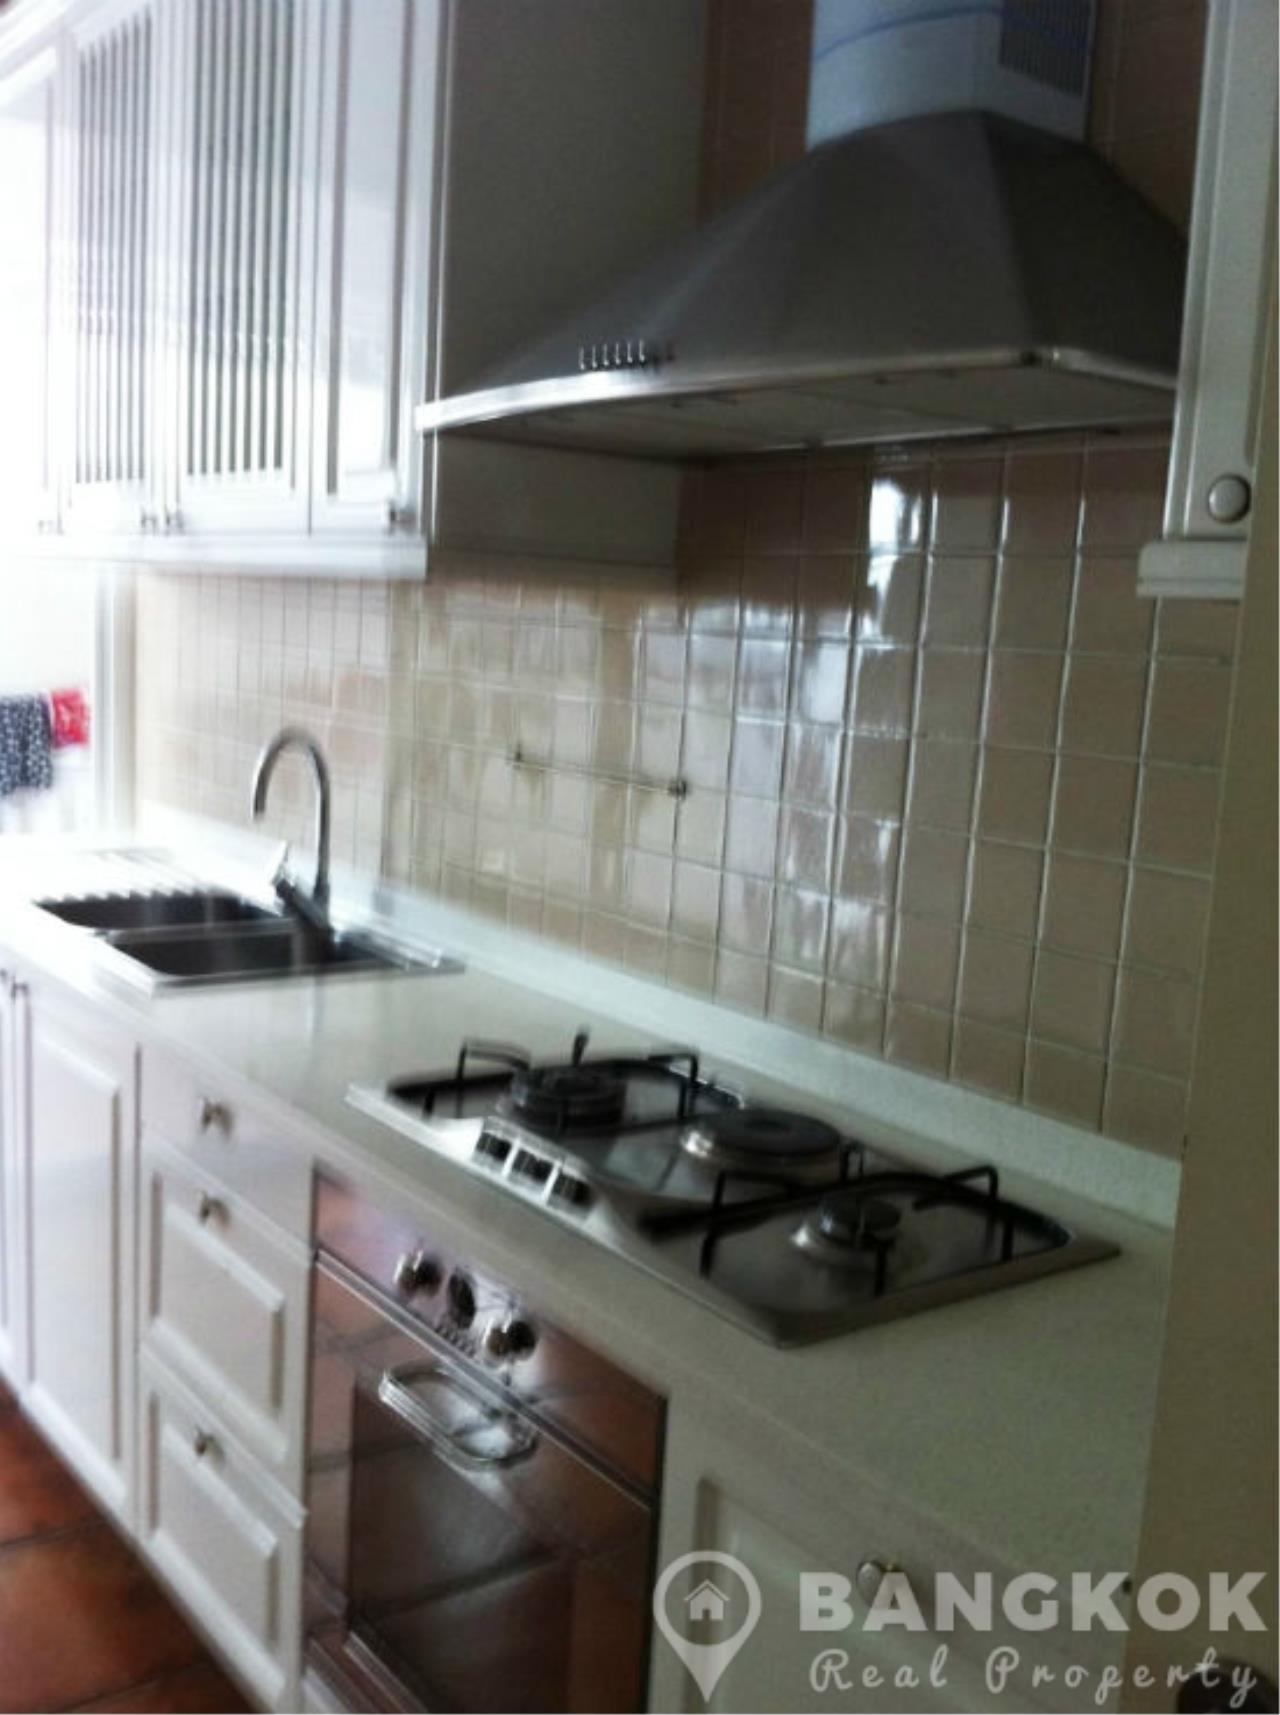 Bangkok Real Property Agency's Spacious Detached 3+1 Bed Family Home near Phrom Phong BTS  3